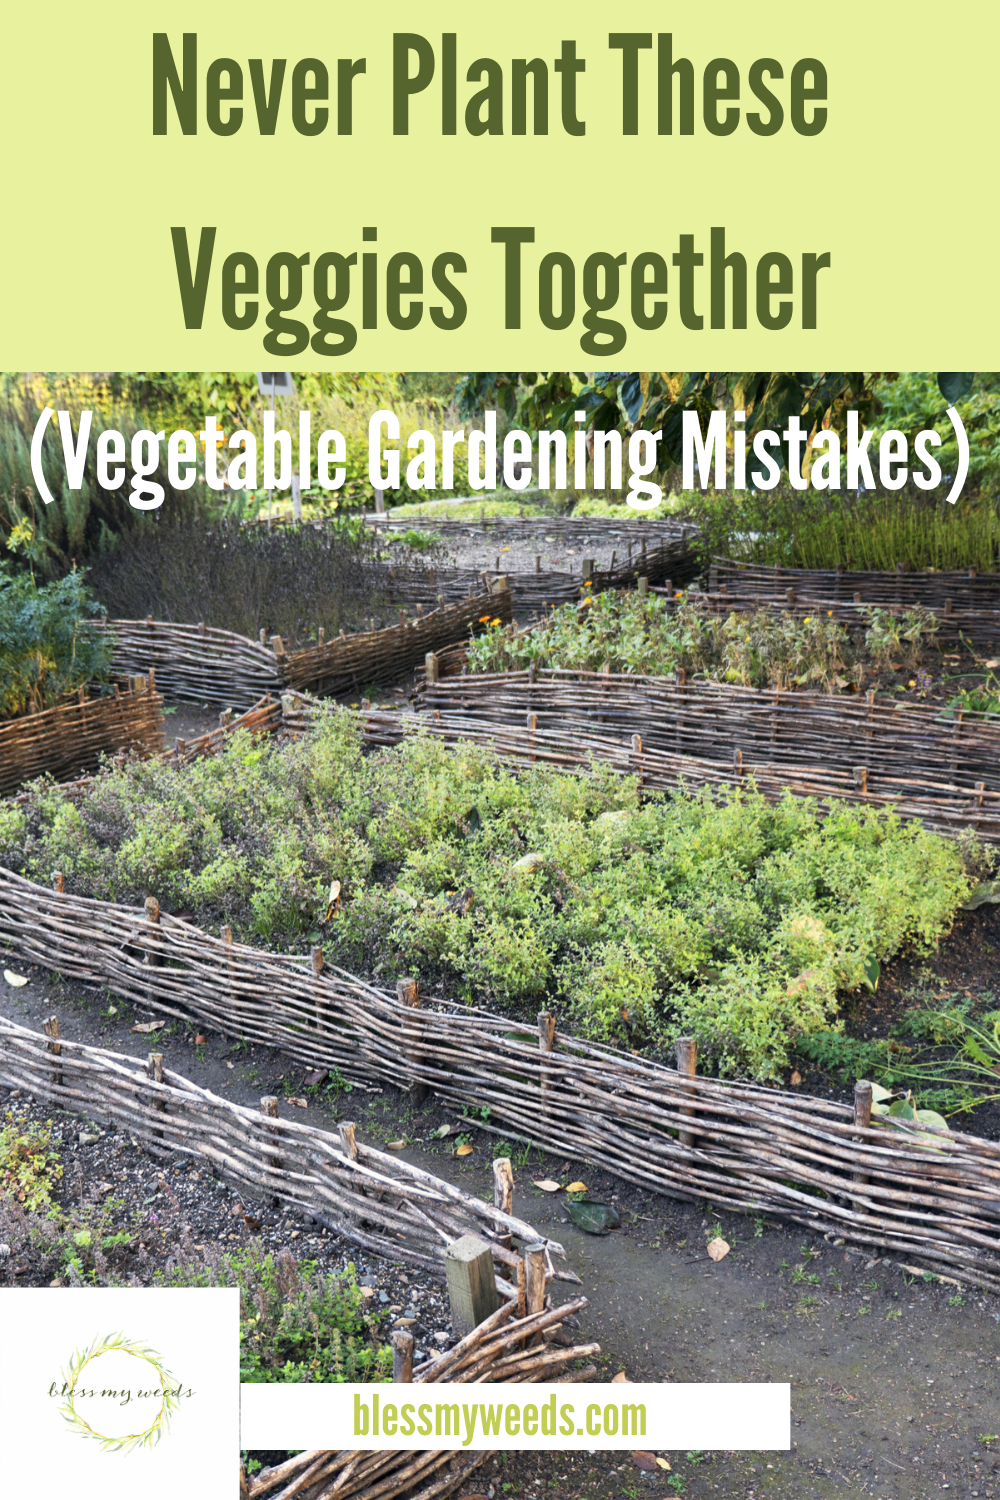 Veggies are veggies, right? Well, when it comes to where you plant them, some veggies are not the same. Discover which veggies do better when planted away from certain other veggies. And make the most of your gardening experience! #ideasforgrowingvegetables #ideasforgrowingveggies